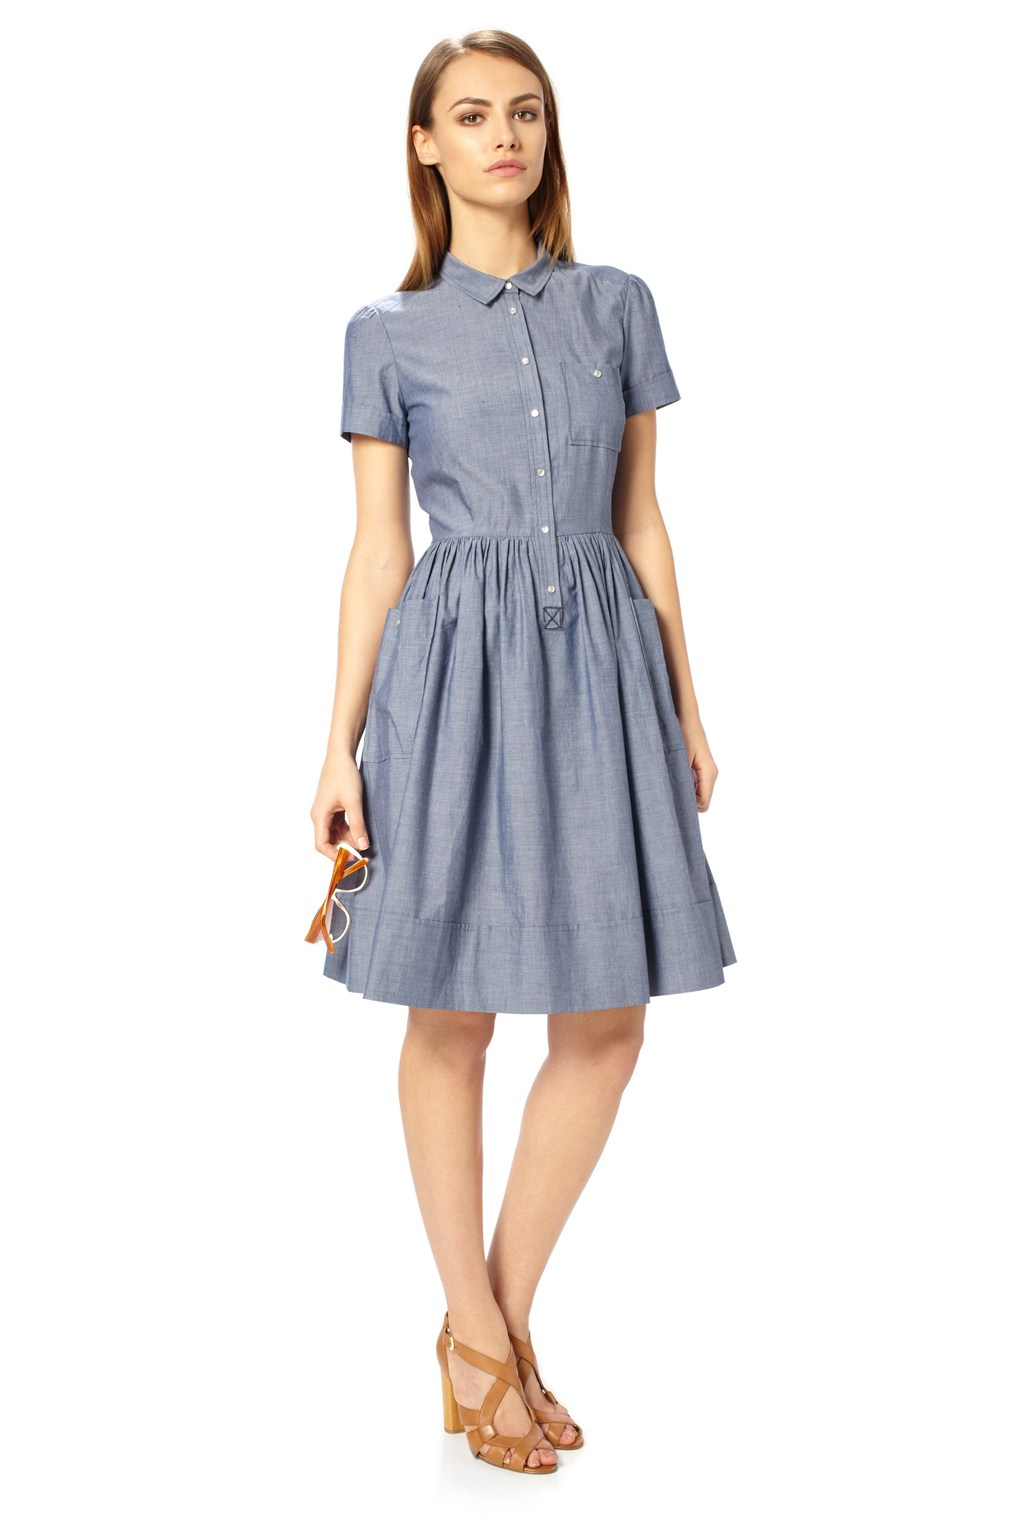 Our Wavy Trim Chambray Midi Dress is the perfect piece to add to your closet. EXTRA 40% OFF** ALL SALE STYLES DETAILS. Giving Back Is Beautiful. Learn More About The Ann Cares Card. Free Shipping on $ or more & $ Flat-Rate Shipping & Handling. Please log out of .